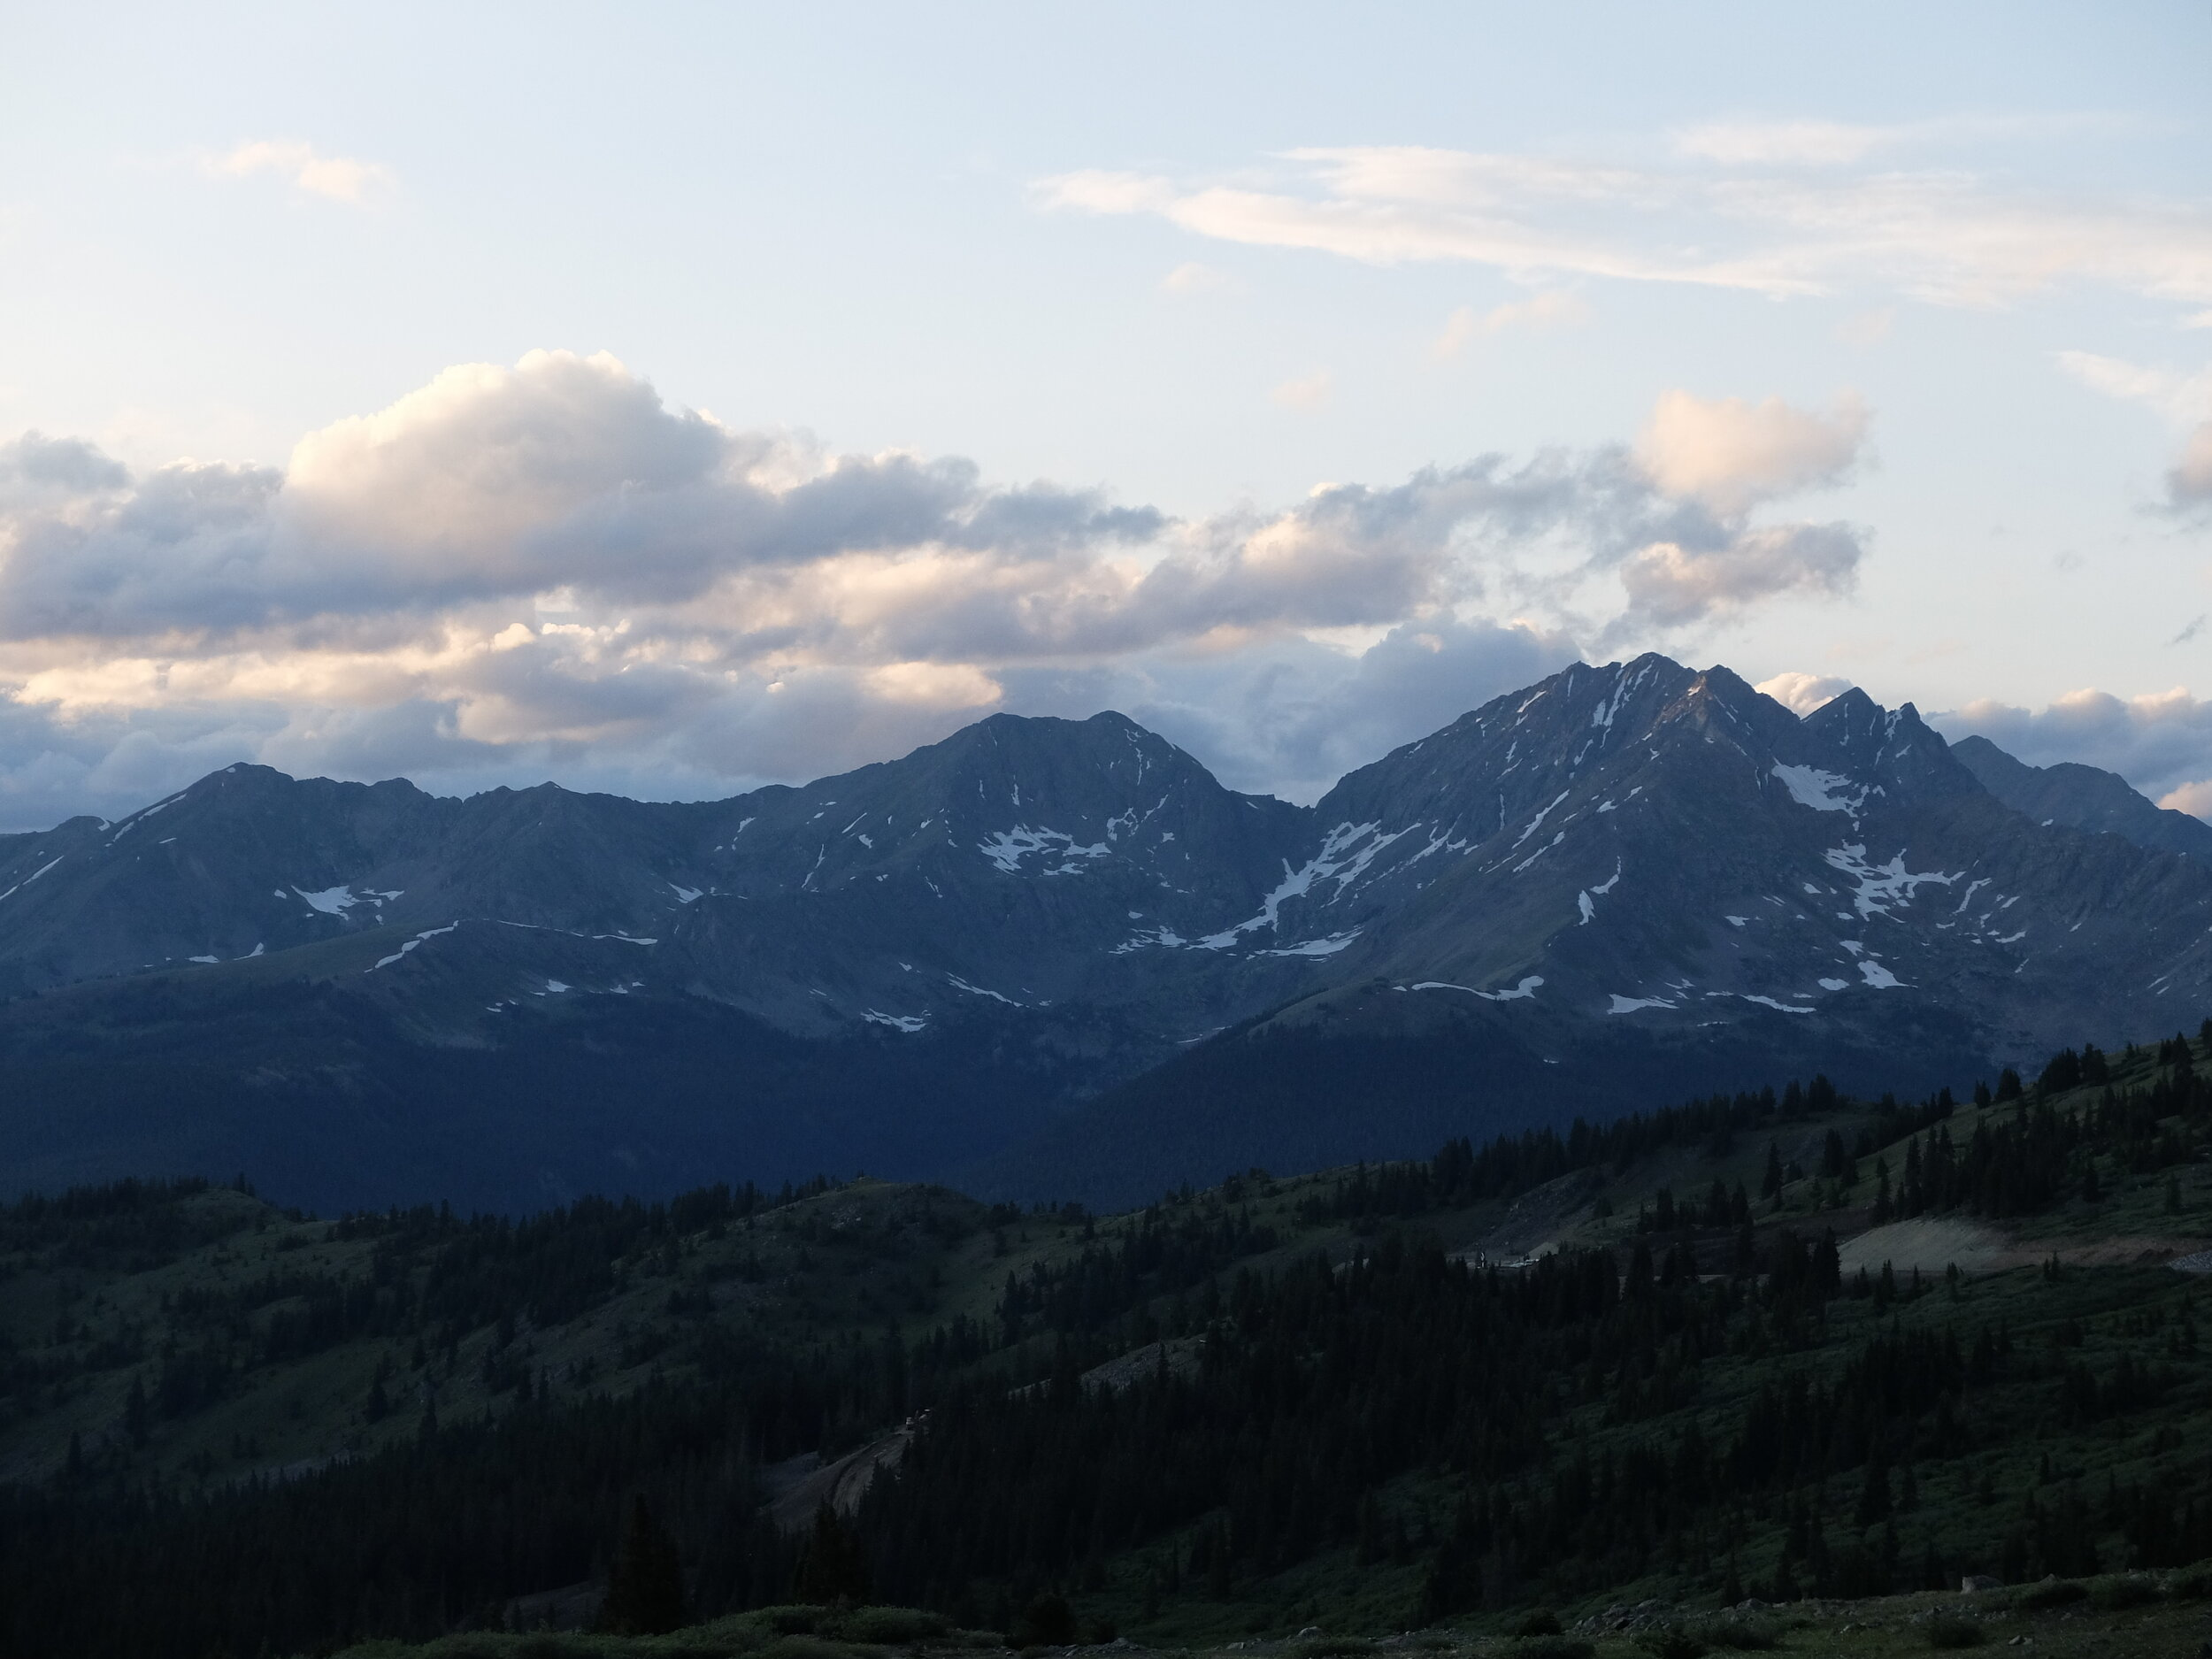 West side of the Sawtooths, from the Continental Divide